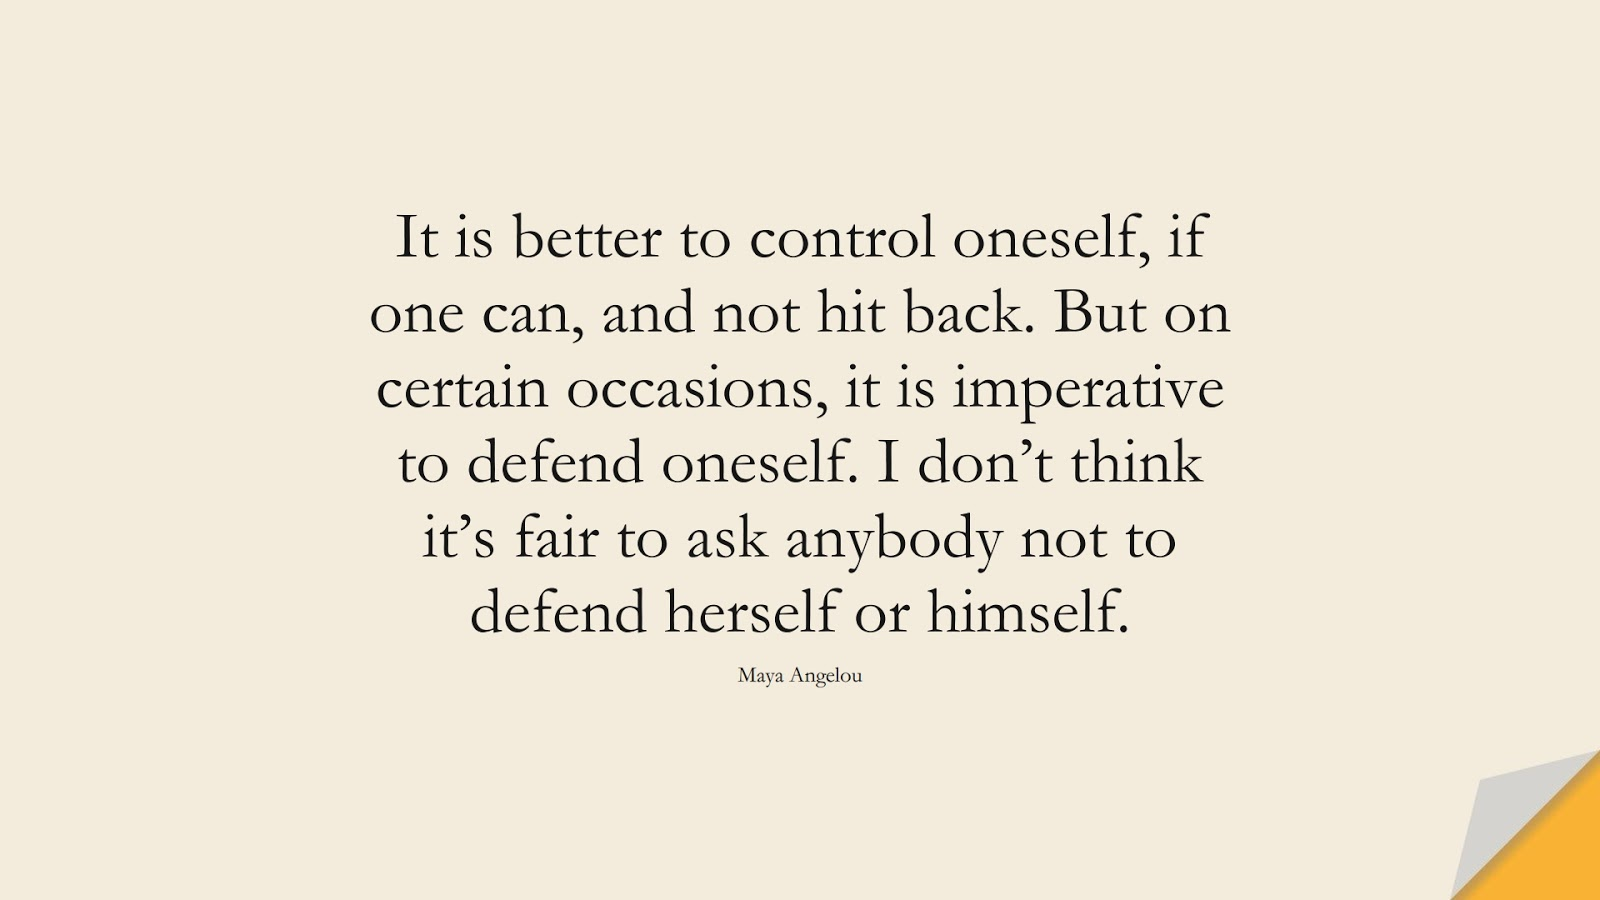 It is better to control oneself, if one can, and not hit back. But on certain occasions, it is imperative to defend oneself. I don't think it's fair to ask anybody not to defend herself or himself. (Maya Angelou);  #MayaAngelouQuotes